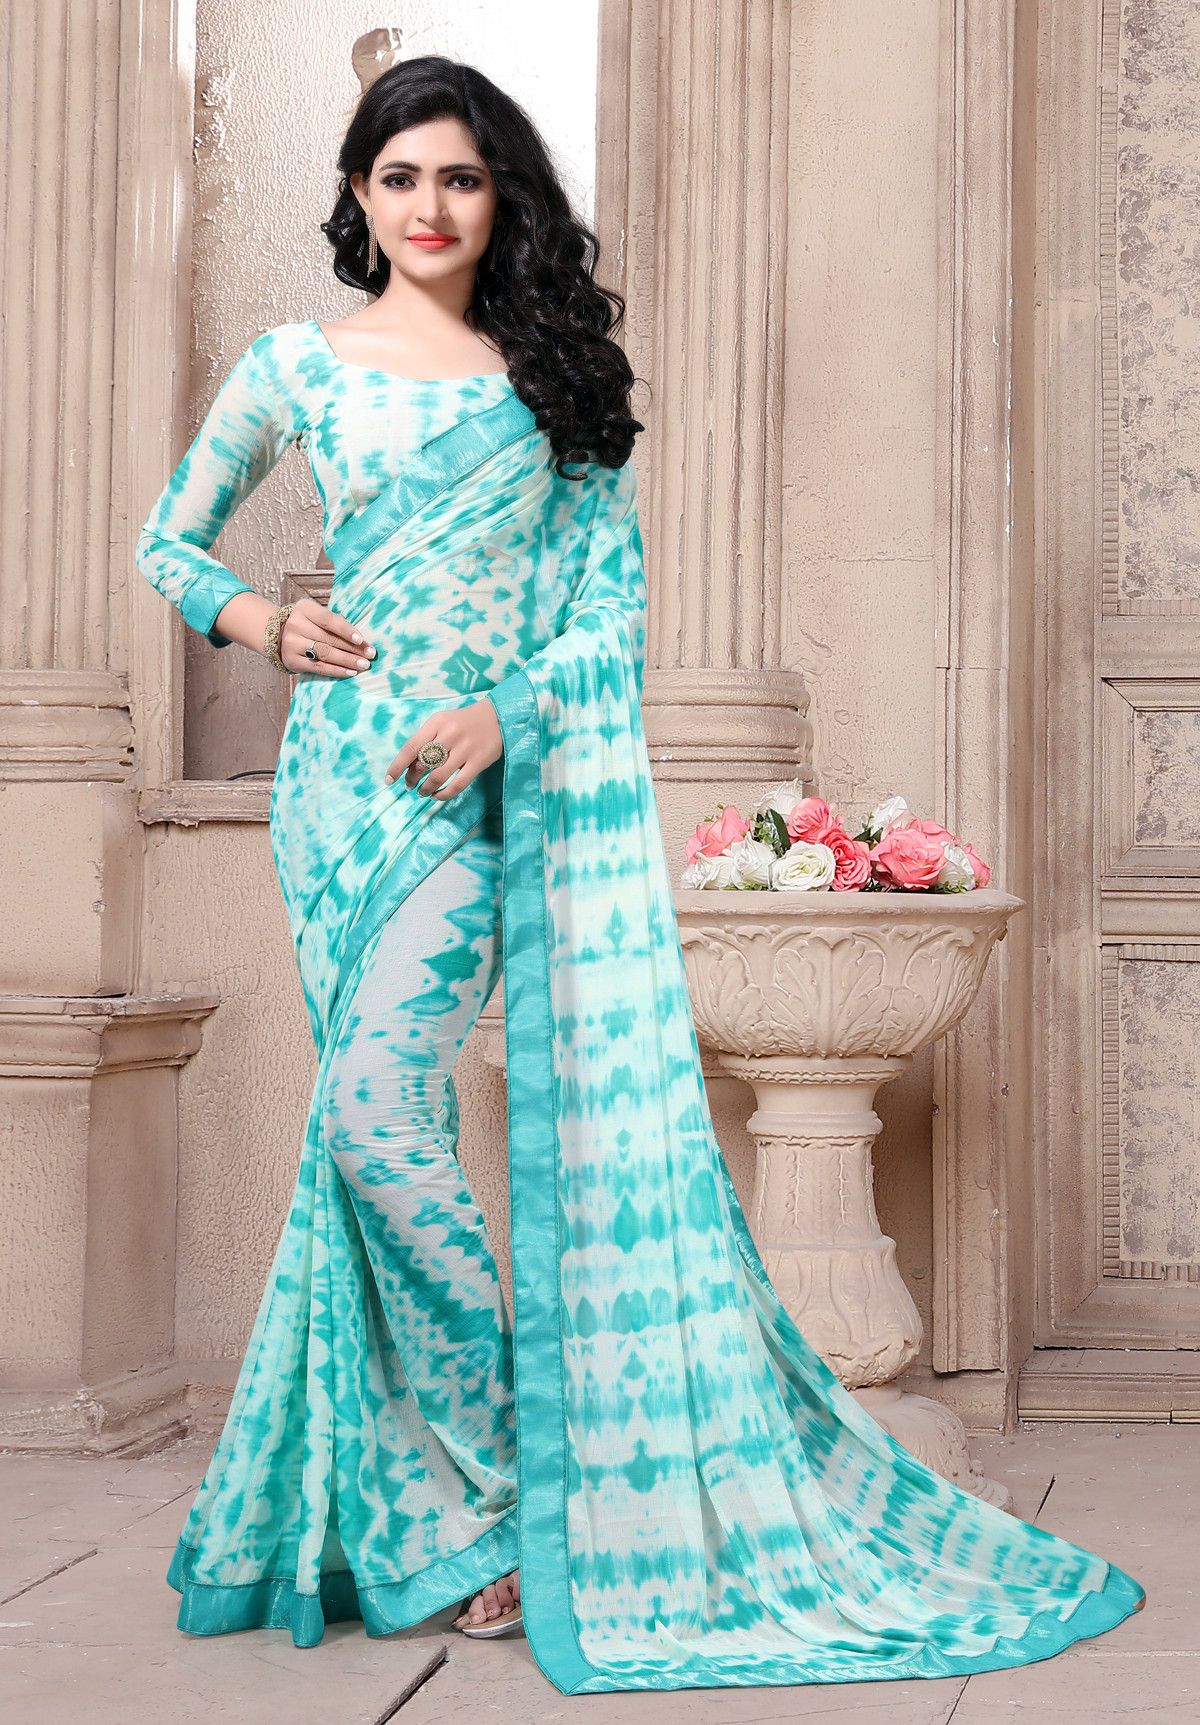 974d07b1714cab Buy Craftsvilla White And Turquoise Color Georgette Hand Painted Designer  Saree With Unstitched Blouse Material online. ✯ 100% authentic products, ✯  Hand ...